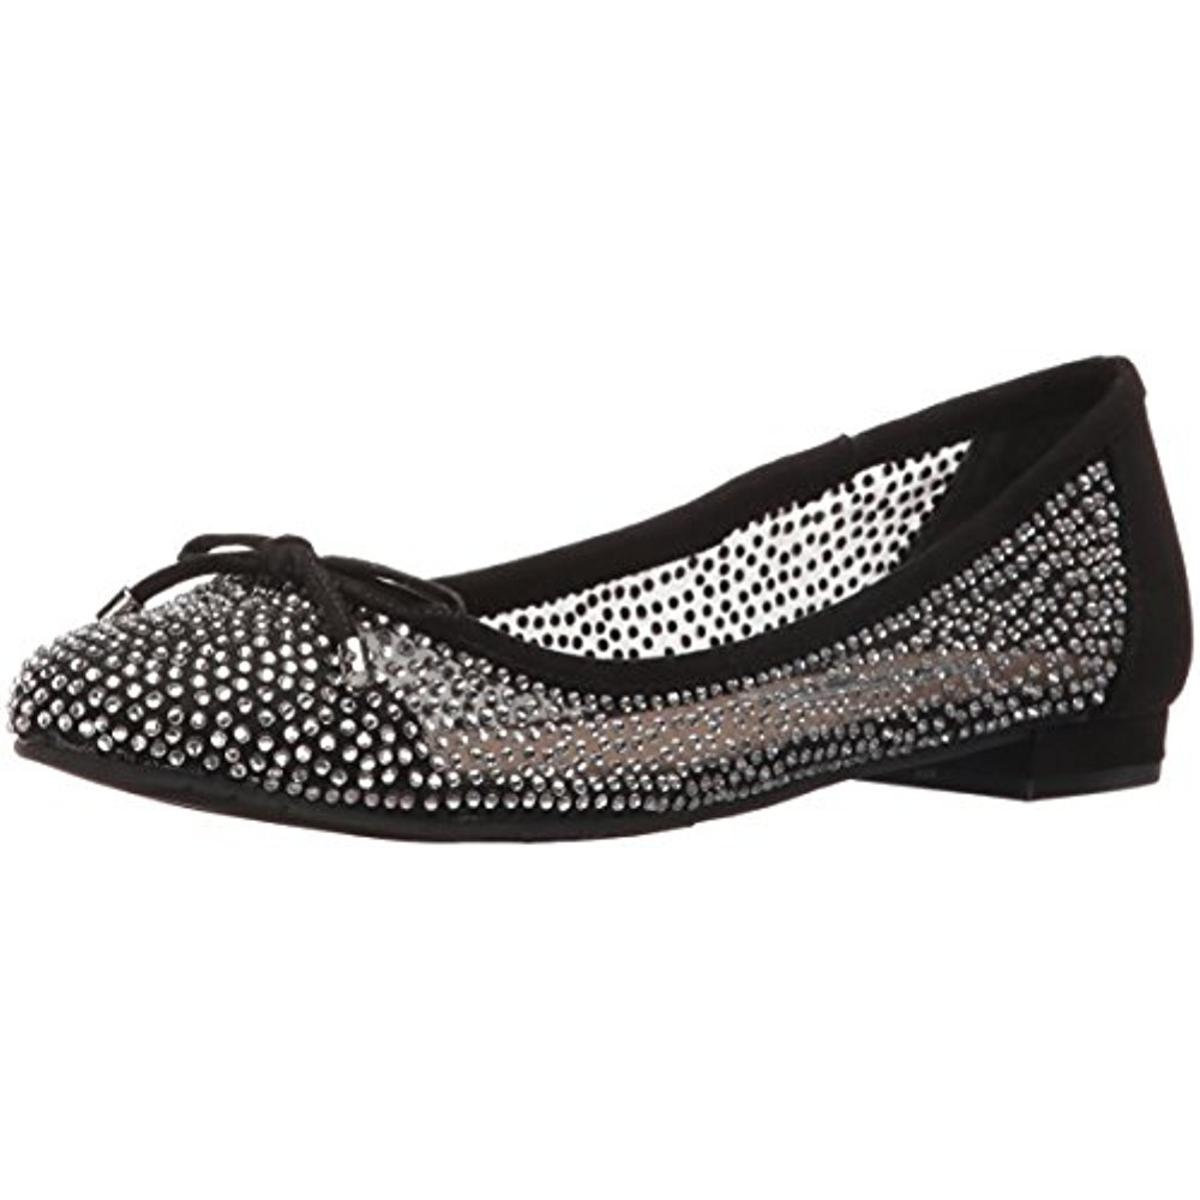 Nina Womens Wynne Black Rhinestones Ballet Flats Shoes 7 Medium (BM) BHFO 0865